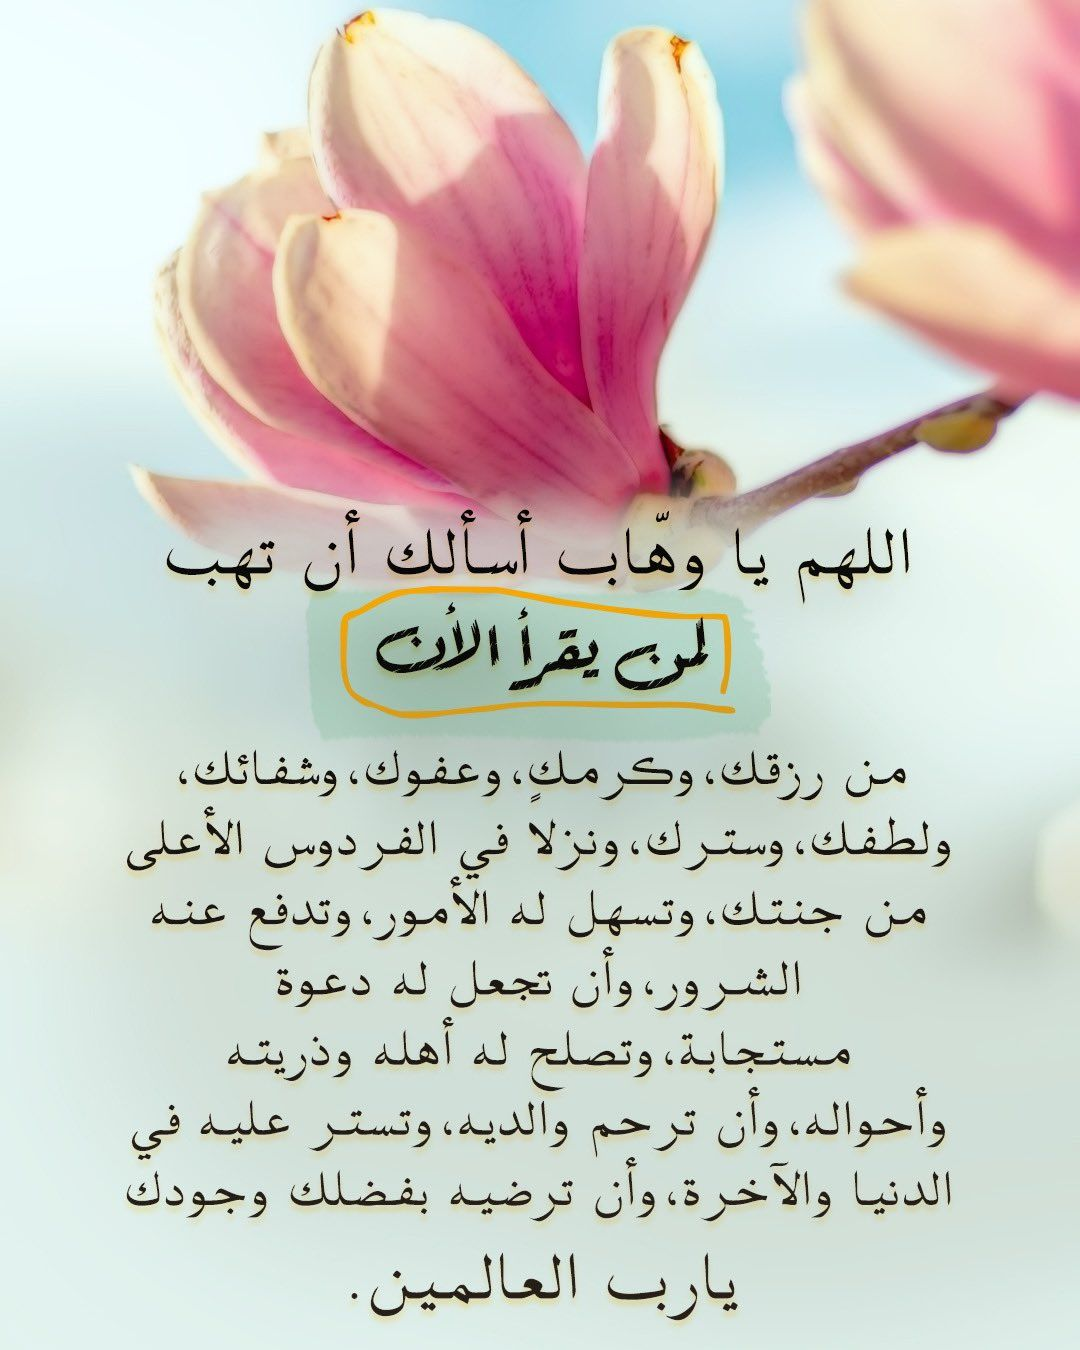 Pin By رغــــــد On رمــــضــان Good Morning Messages Good Morning Quotes Islamic Love Quotes